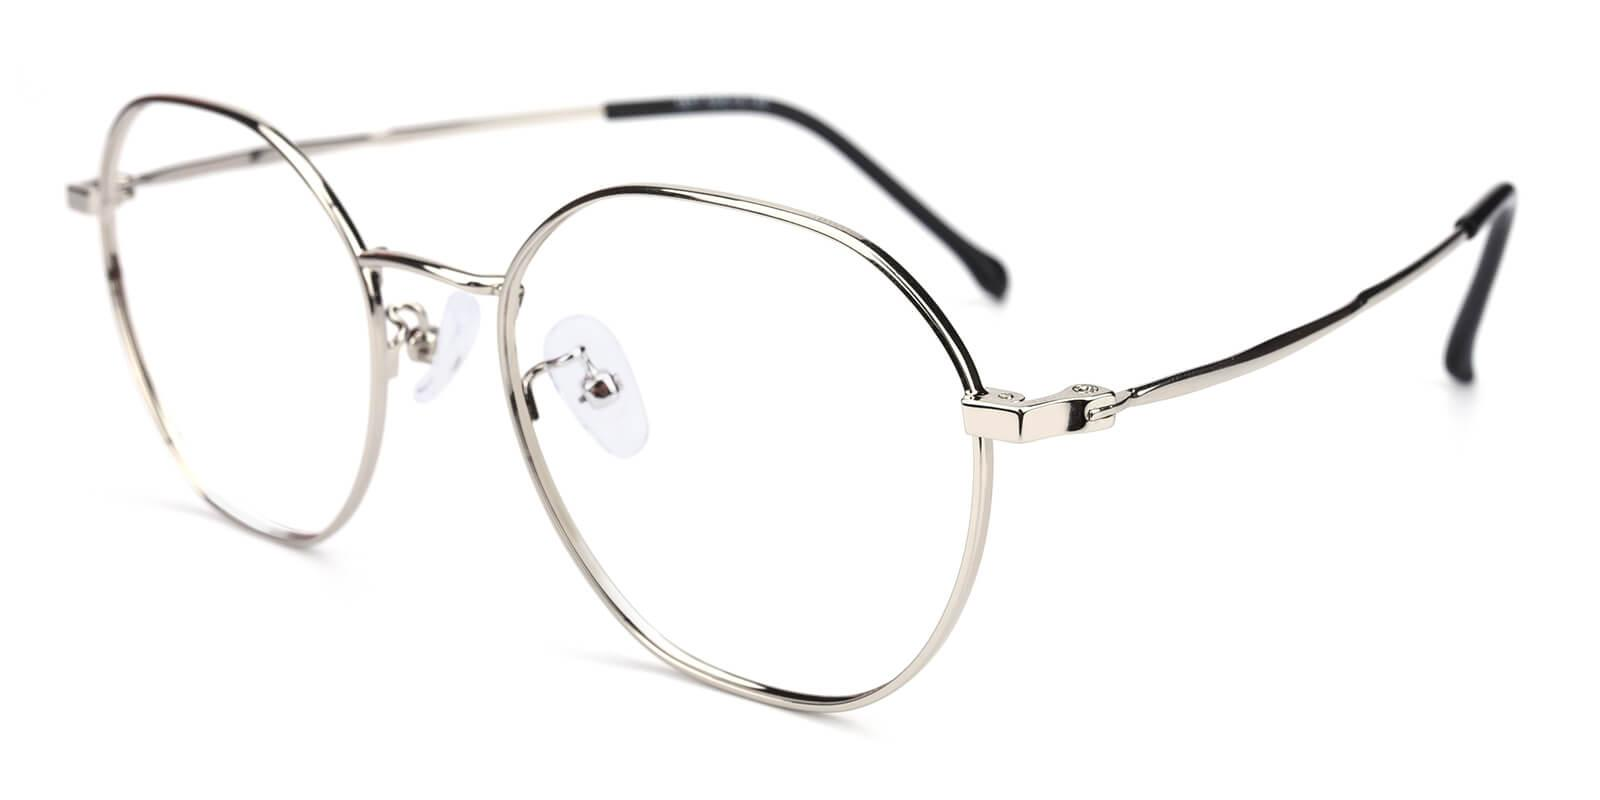 Govind-Silver-Round-Metal-Eyeglasses-additional1